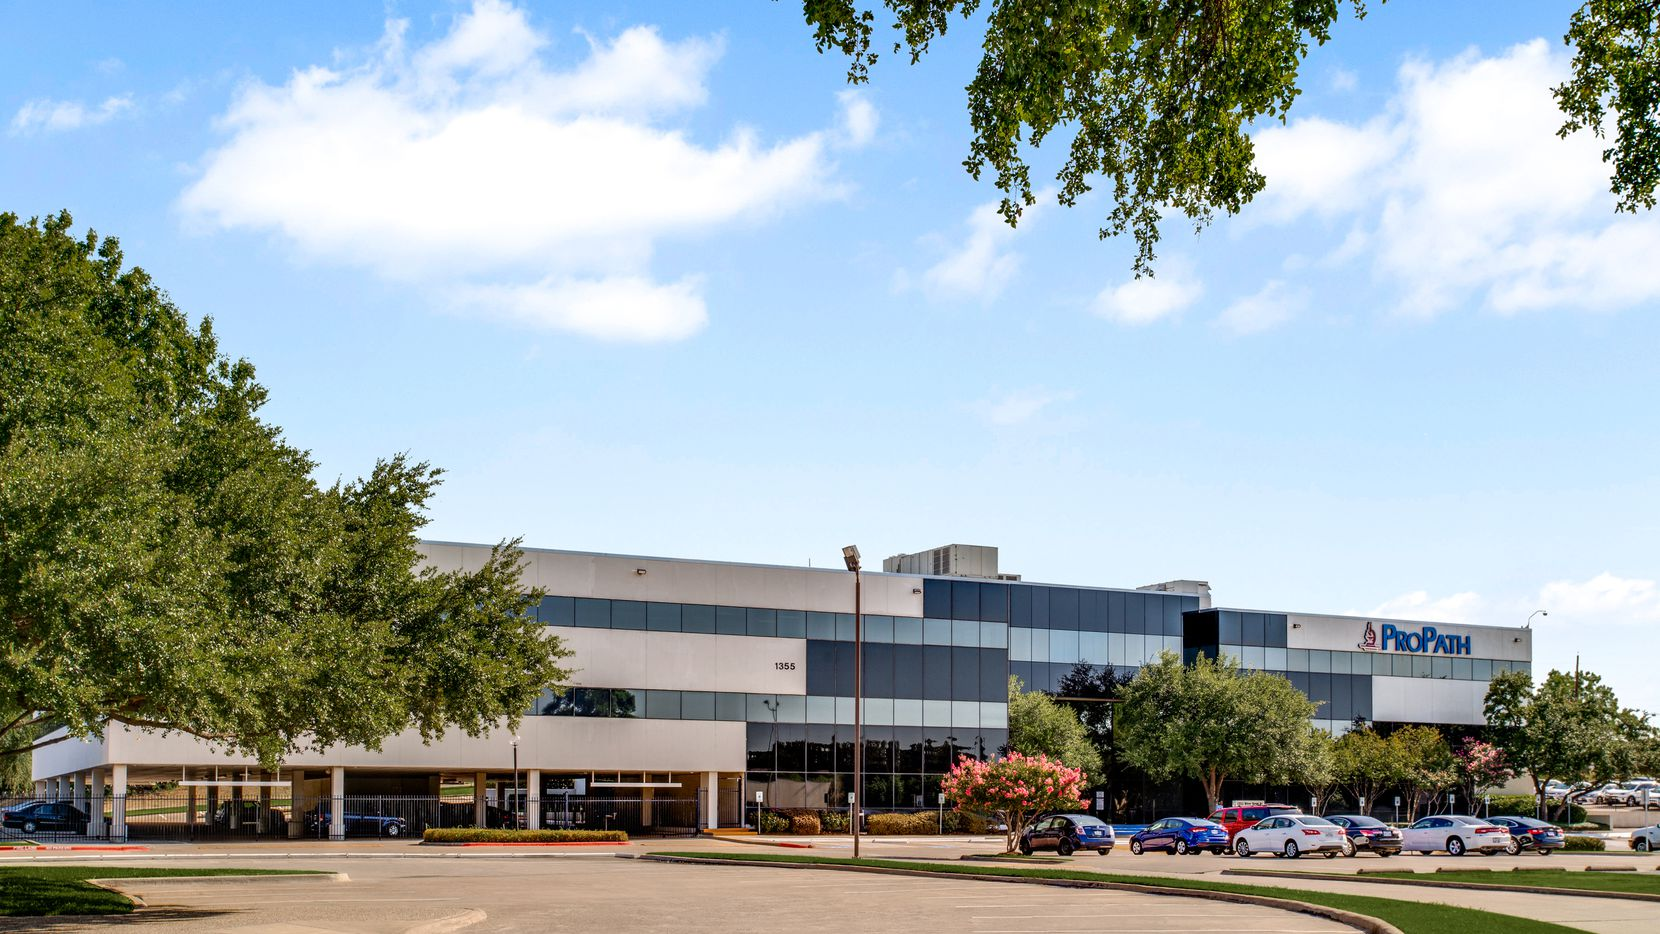 Hammes Partners bought the ProPath building near Stemmons Freeway.